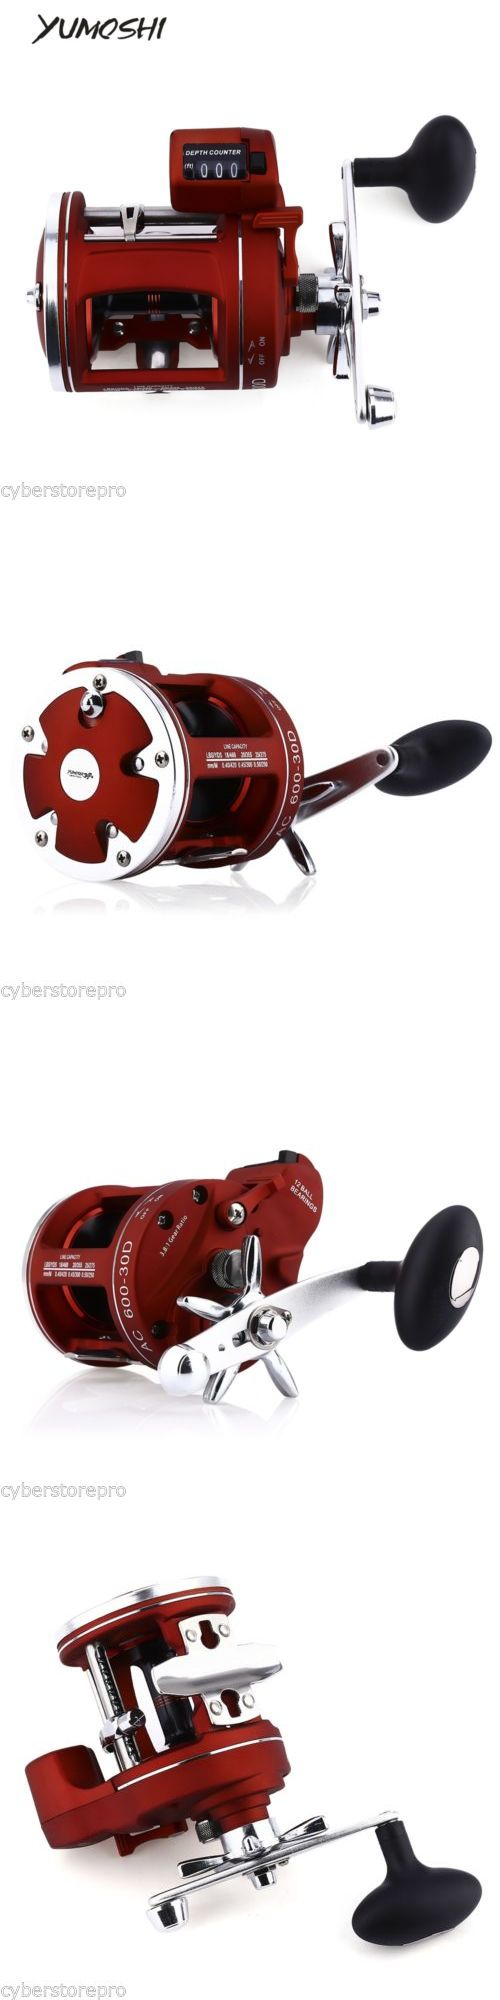 Spincasting Reels 108154: Yumoshi 12 Bearings Fishing Reel With Electric Depth Counting Multiplier -> BUY IT NOW ONLY: $33.99 on eBay!